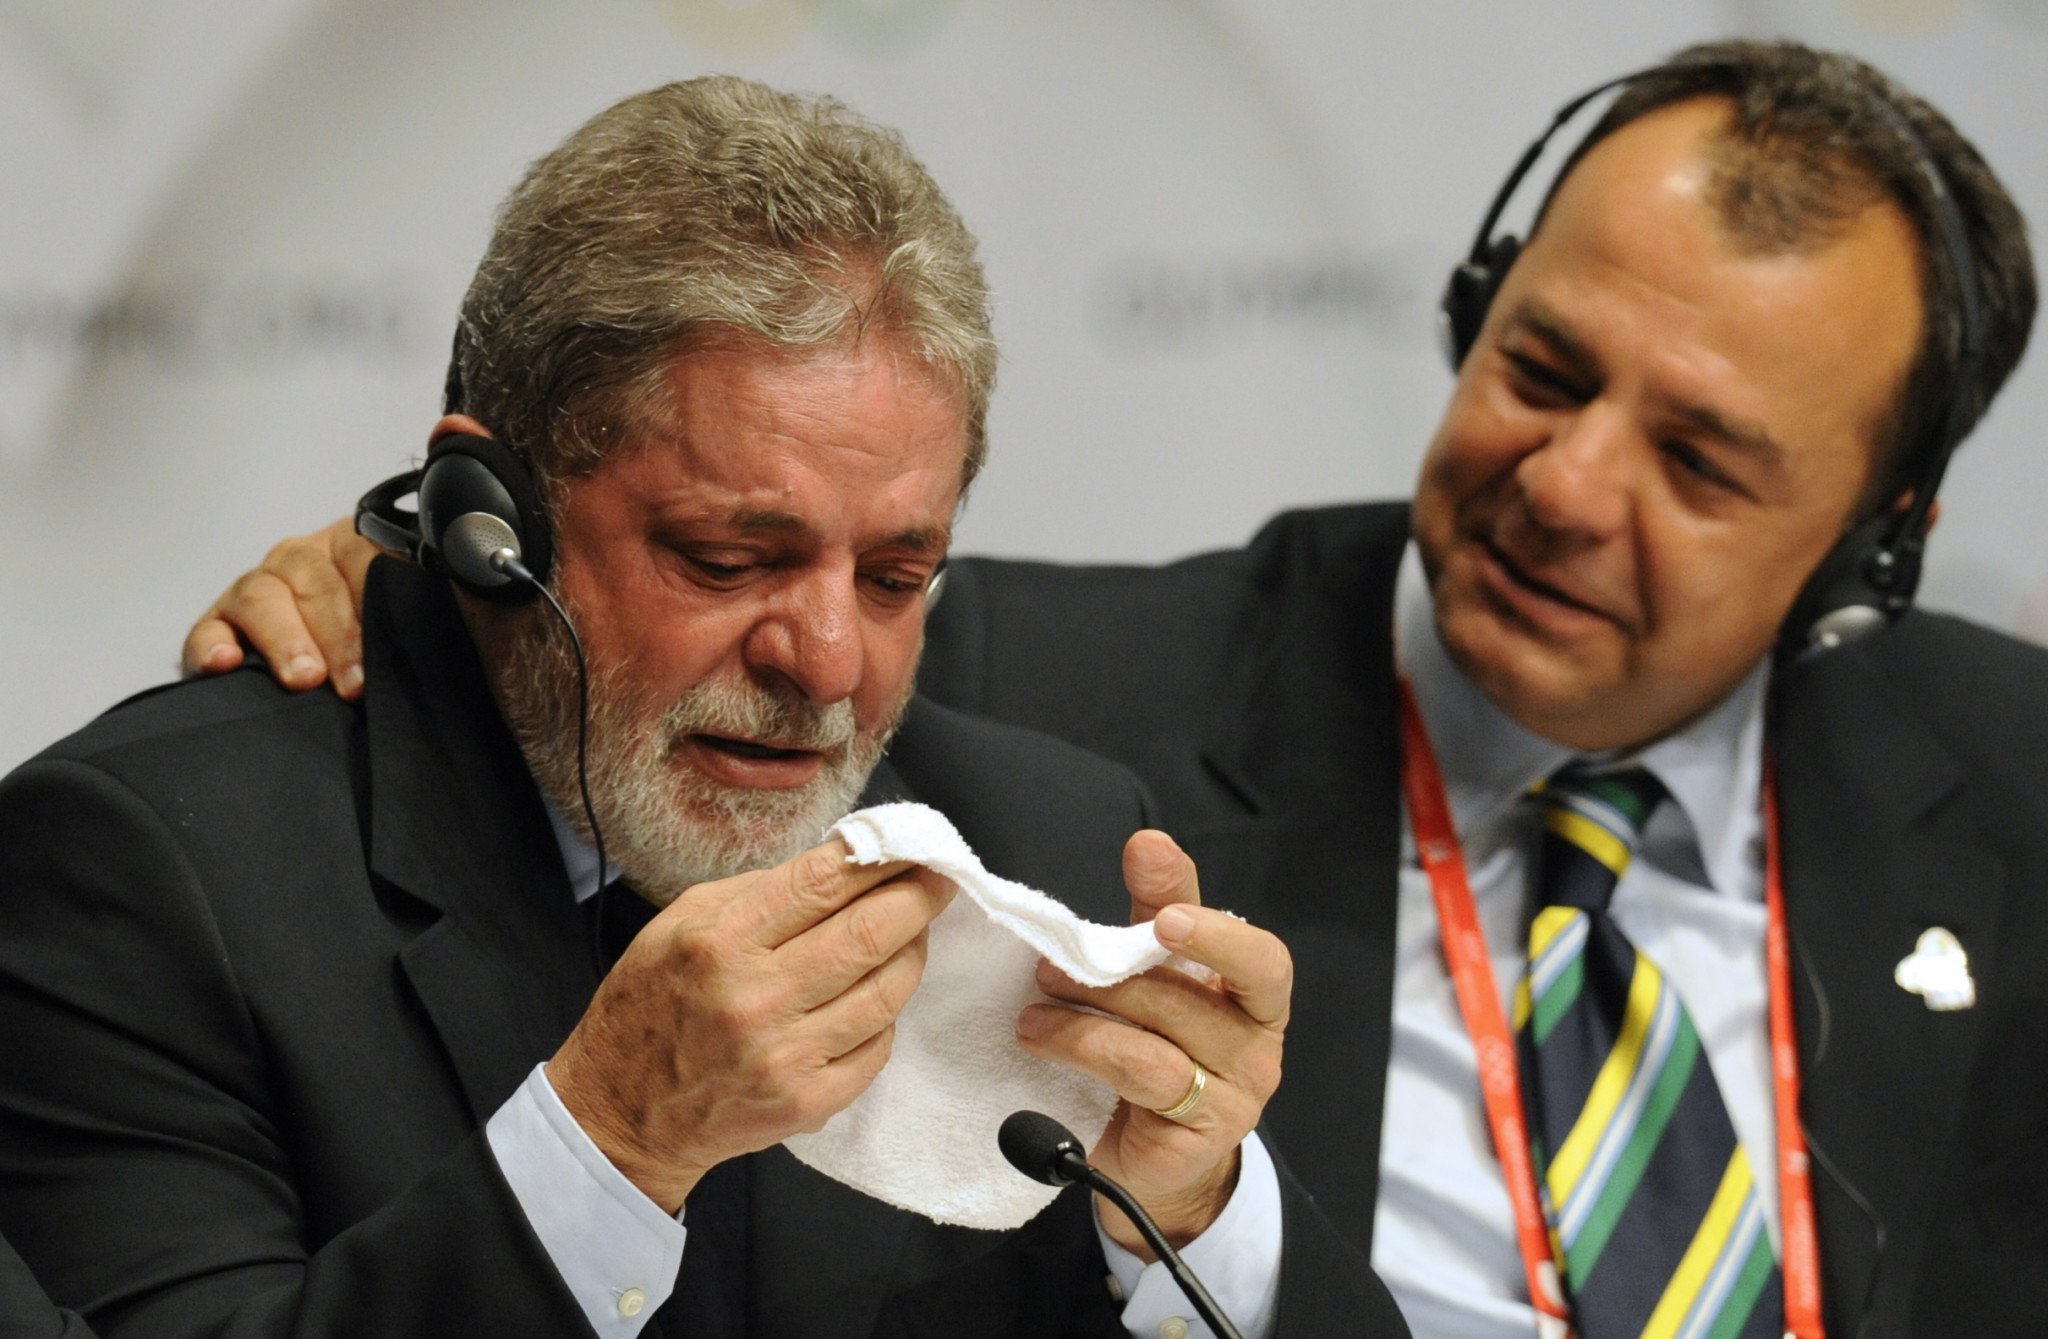 Lula denies involvement in alleged bribes paid to secure Rio 2016 votes